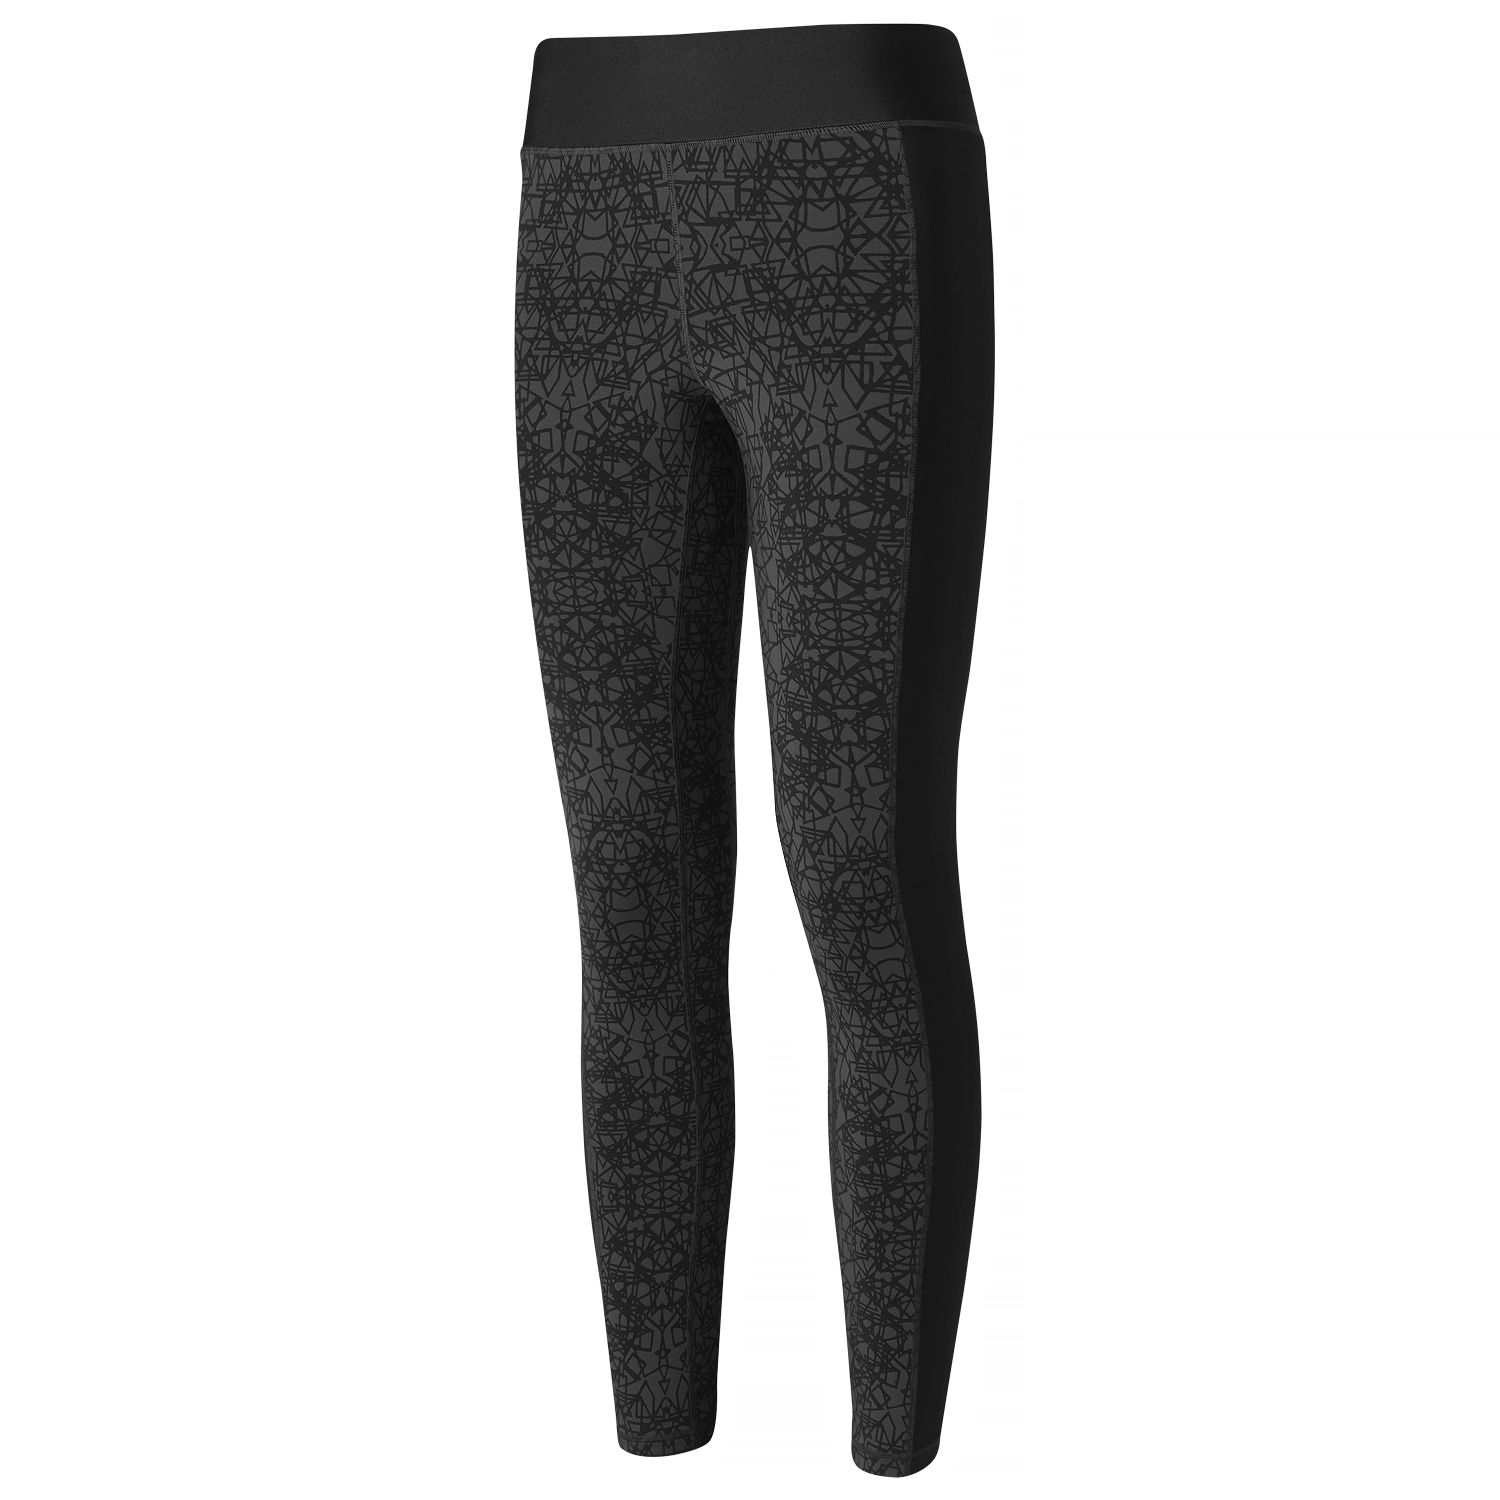 CASALL BASE 7-8 TIGHTS